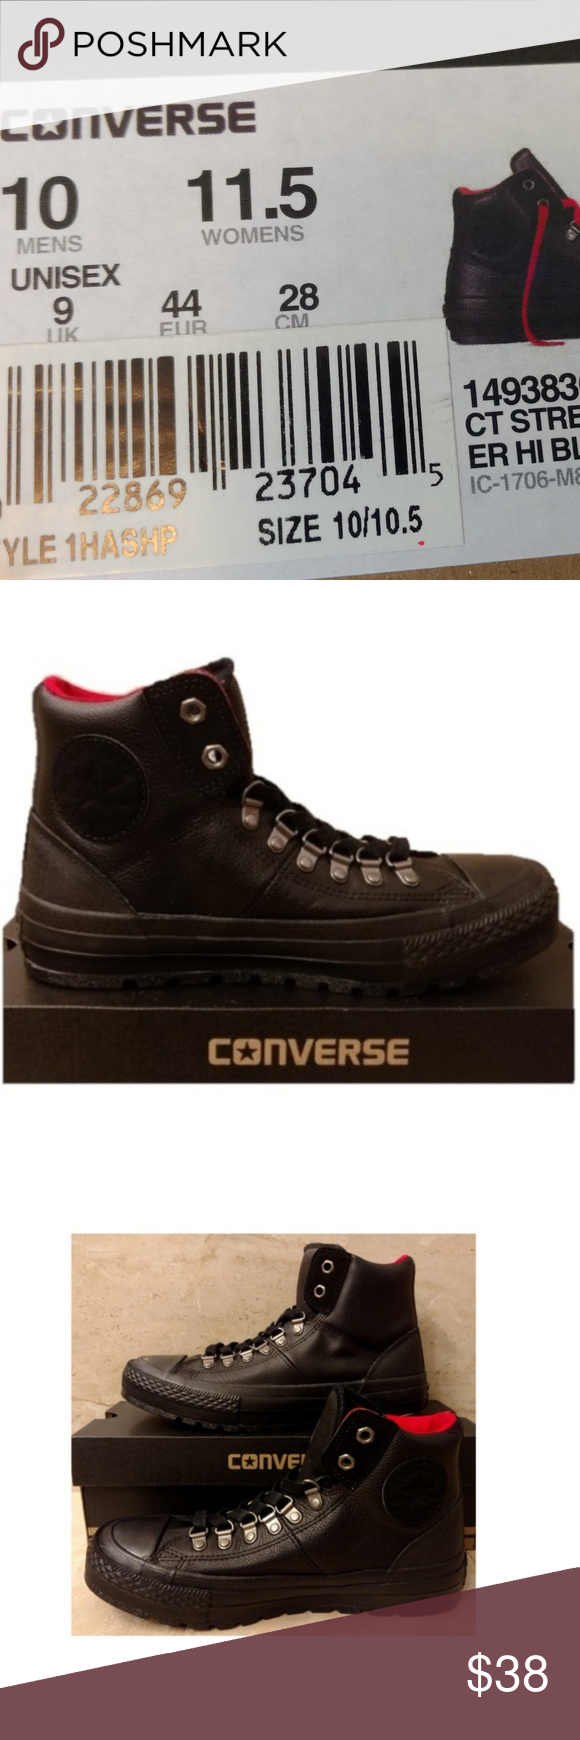 9f3f381d53e7 Sz 10 Black Leather Converse Street Hiker Boot Hi Size  US Men s 10  Condition  Brand new with box NWB Style  149383C MSRP   90 Uplift your  Boots with these ...